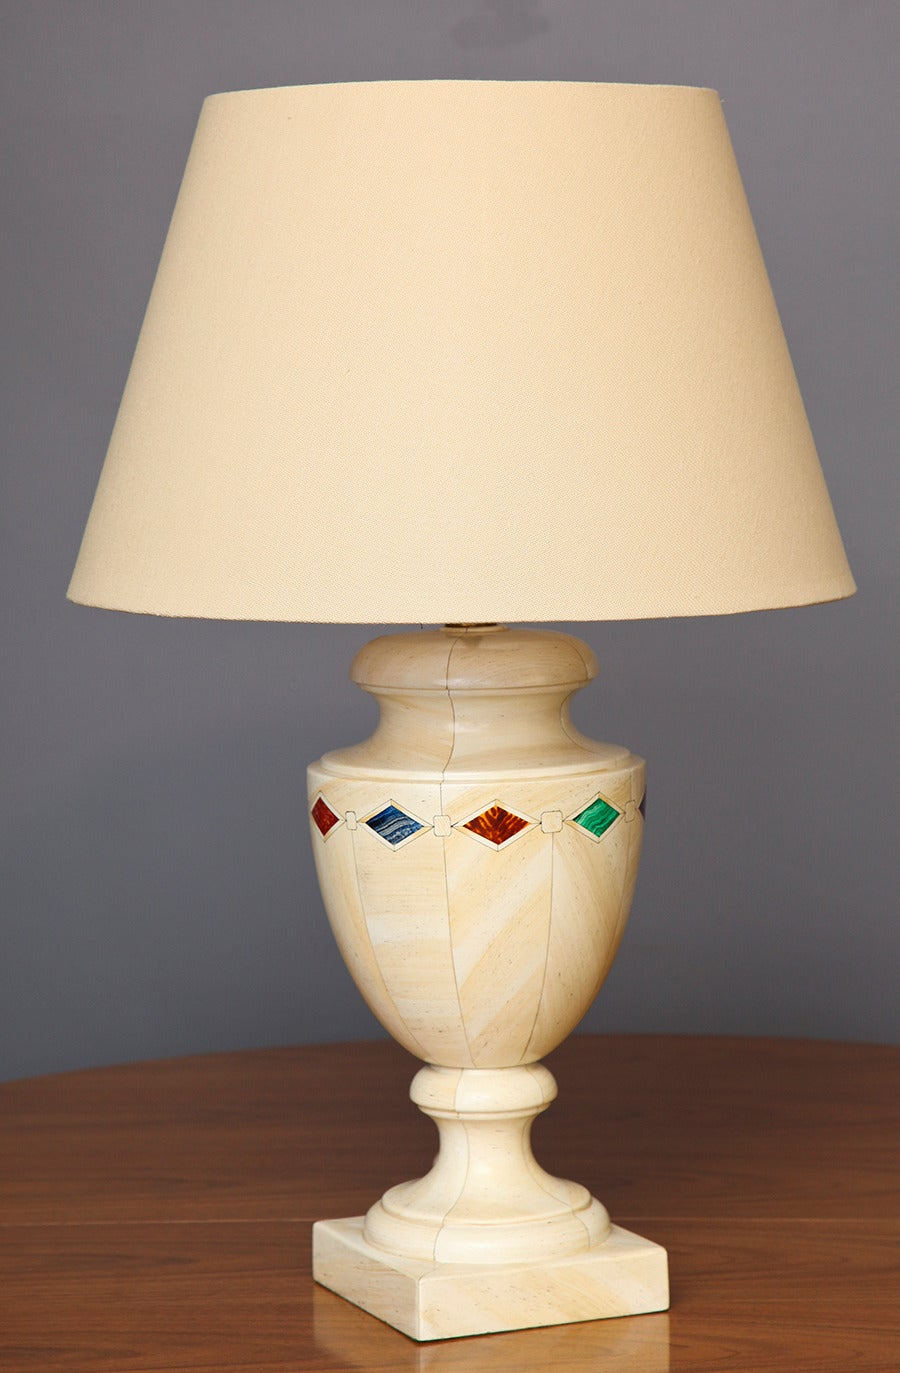 Jean Roger Faux Pietra Dura Ceramic Table Lamp For Sale At